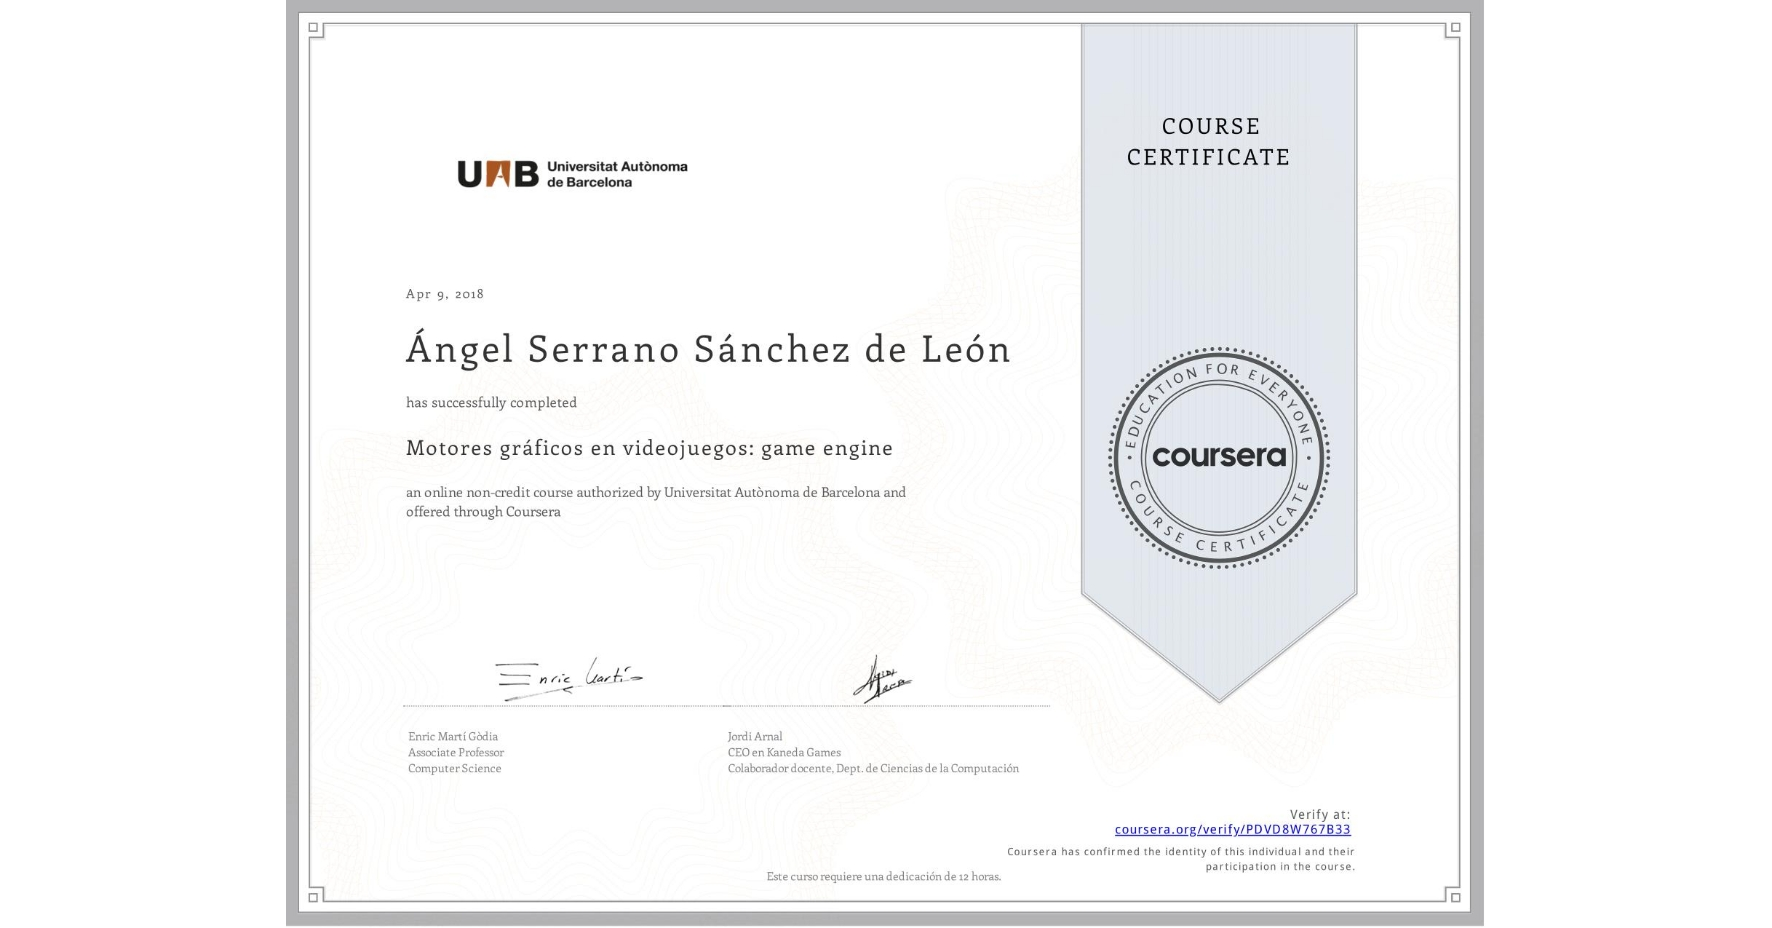 View certificate for Ángel Serrano Sánchez de León, Motores gráficos en videojuegos: game engine, an online non-credit course authorized by Universitat Autònoma de Barcelona and offered through Coursera